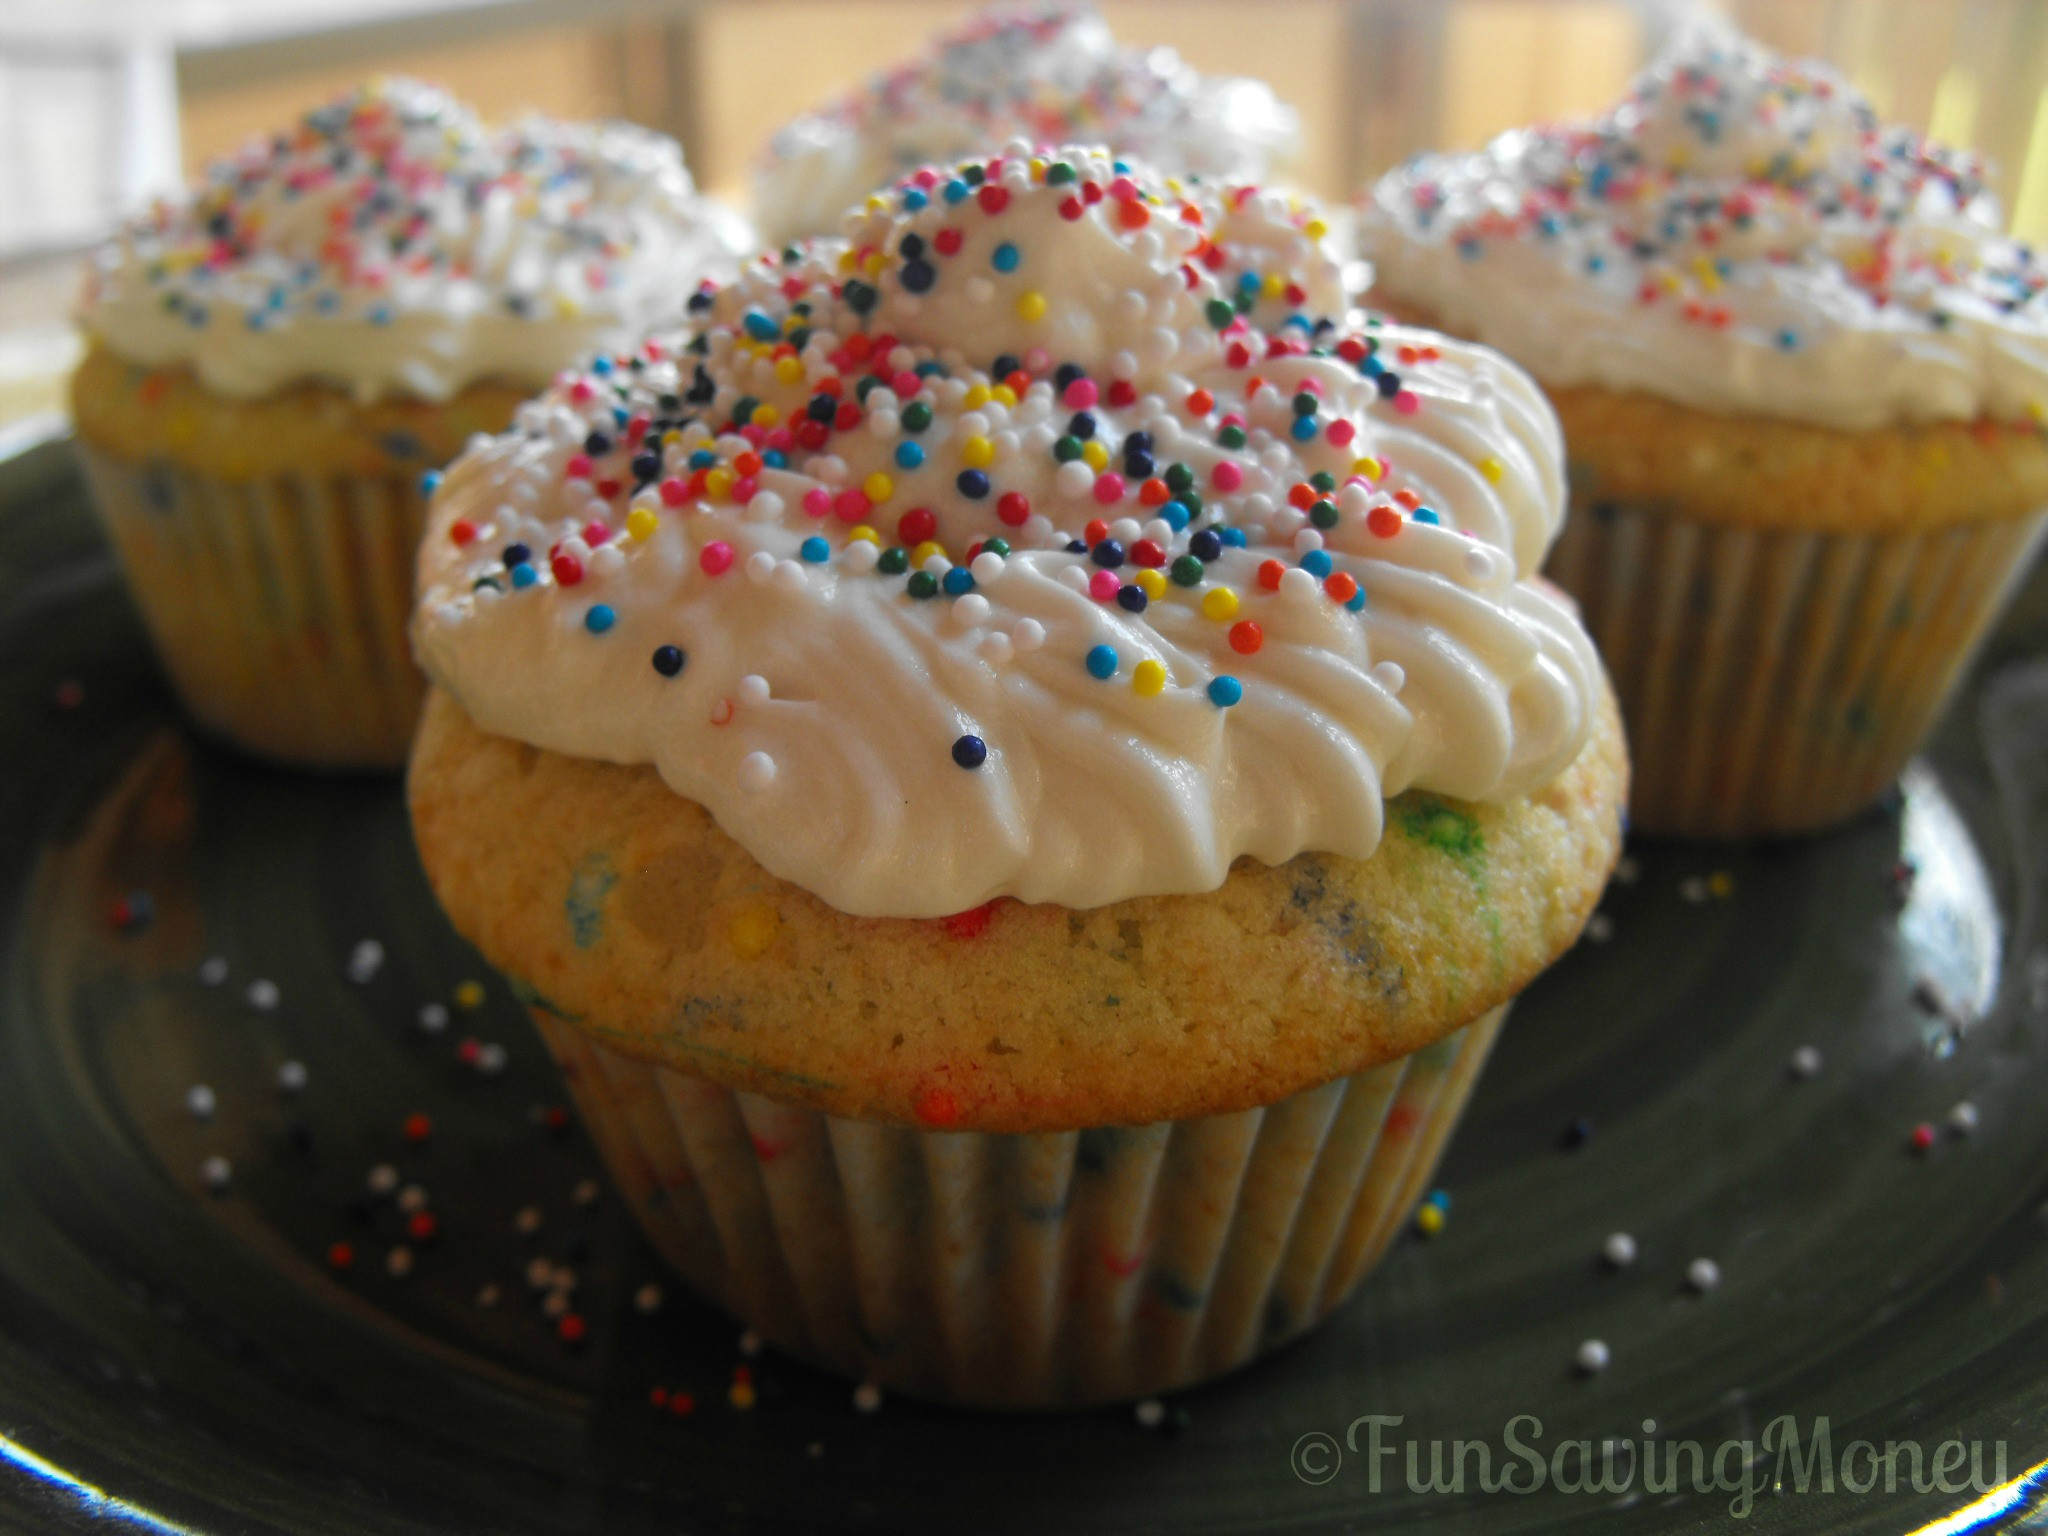 How To Make Homemade Cupcakes  Homemade Funfetti Cupcakes With ButterCream Frosting